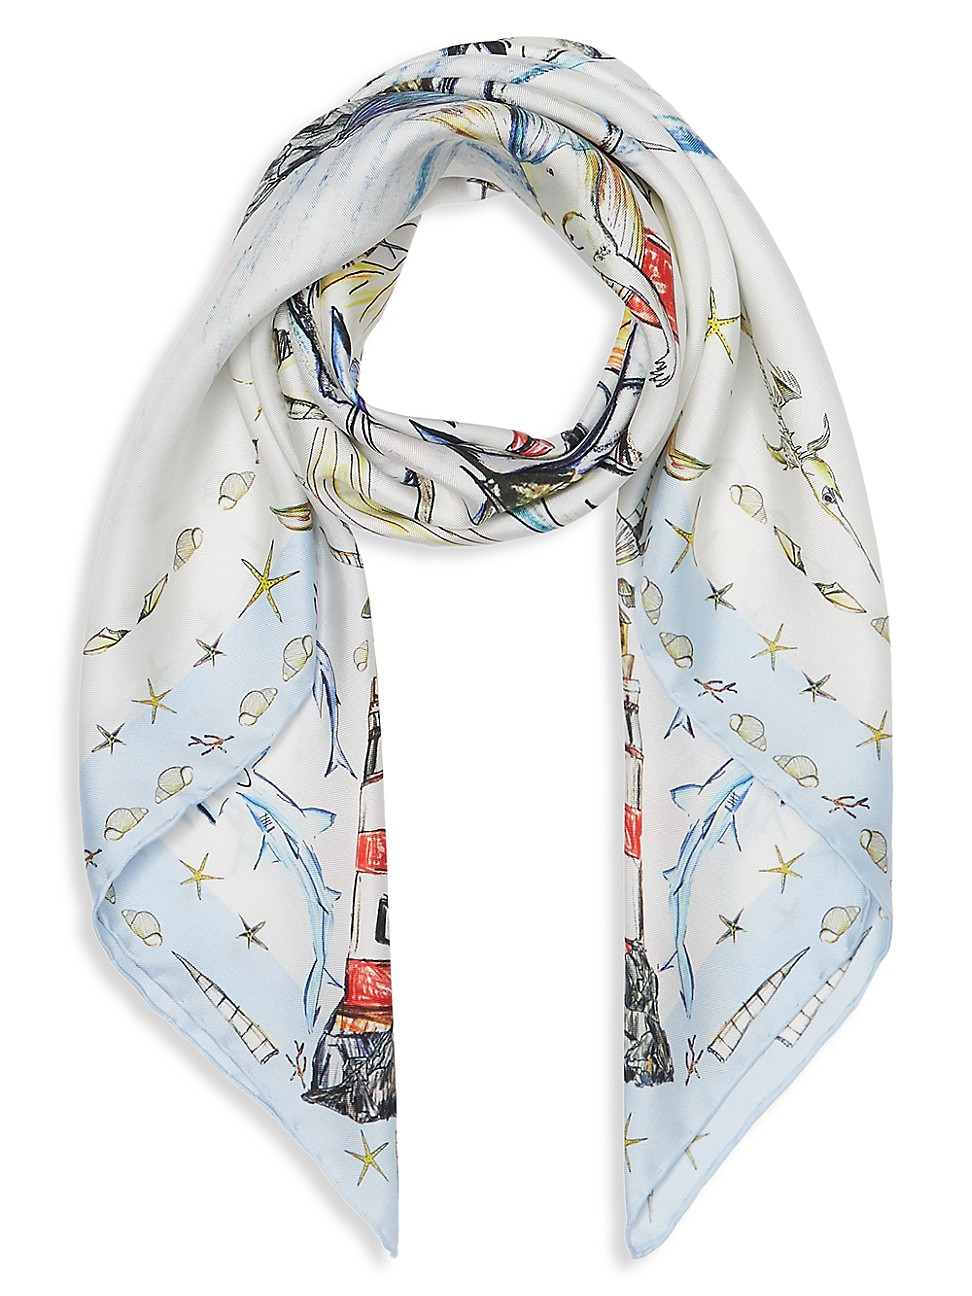 Burberry Scarves WOMEN'S MARINE SKETCH PRINT SILK SCARF